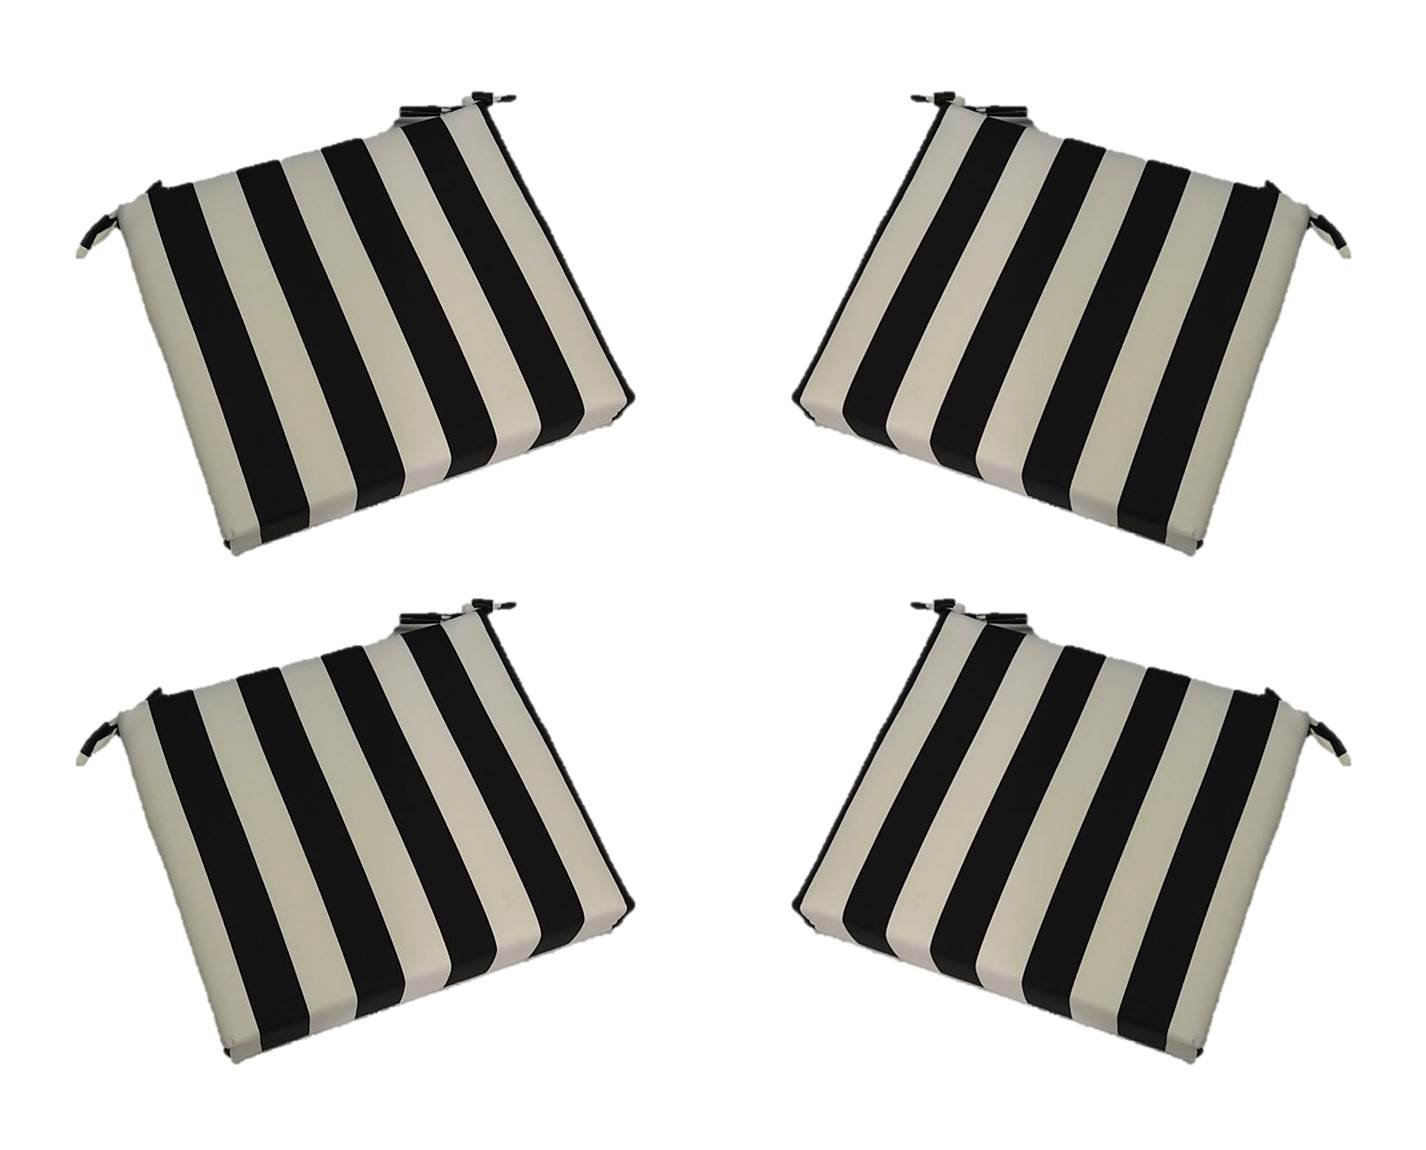 "Set of 4 - Indoor / Outdoor Black and White Stripe 17"" X 17"" Square Universal 3"" Thick Foam Seat Cushions with Ties for Dining Patio Chairs"